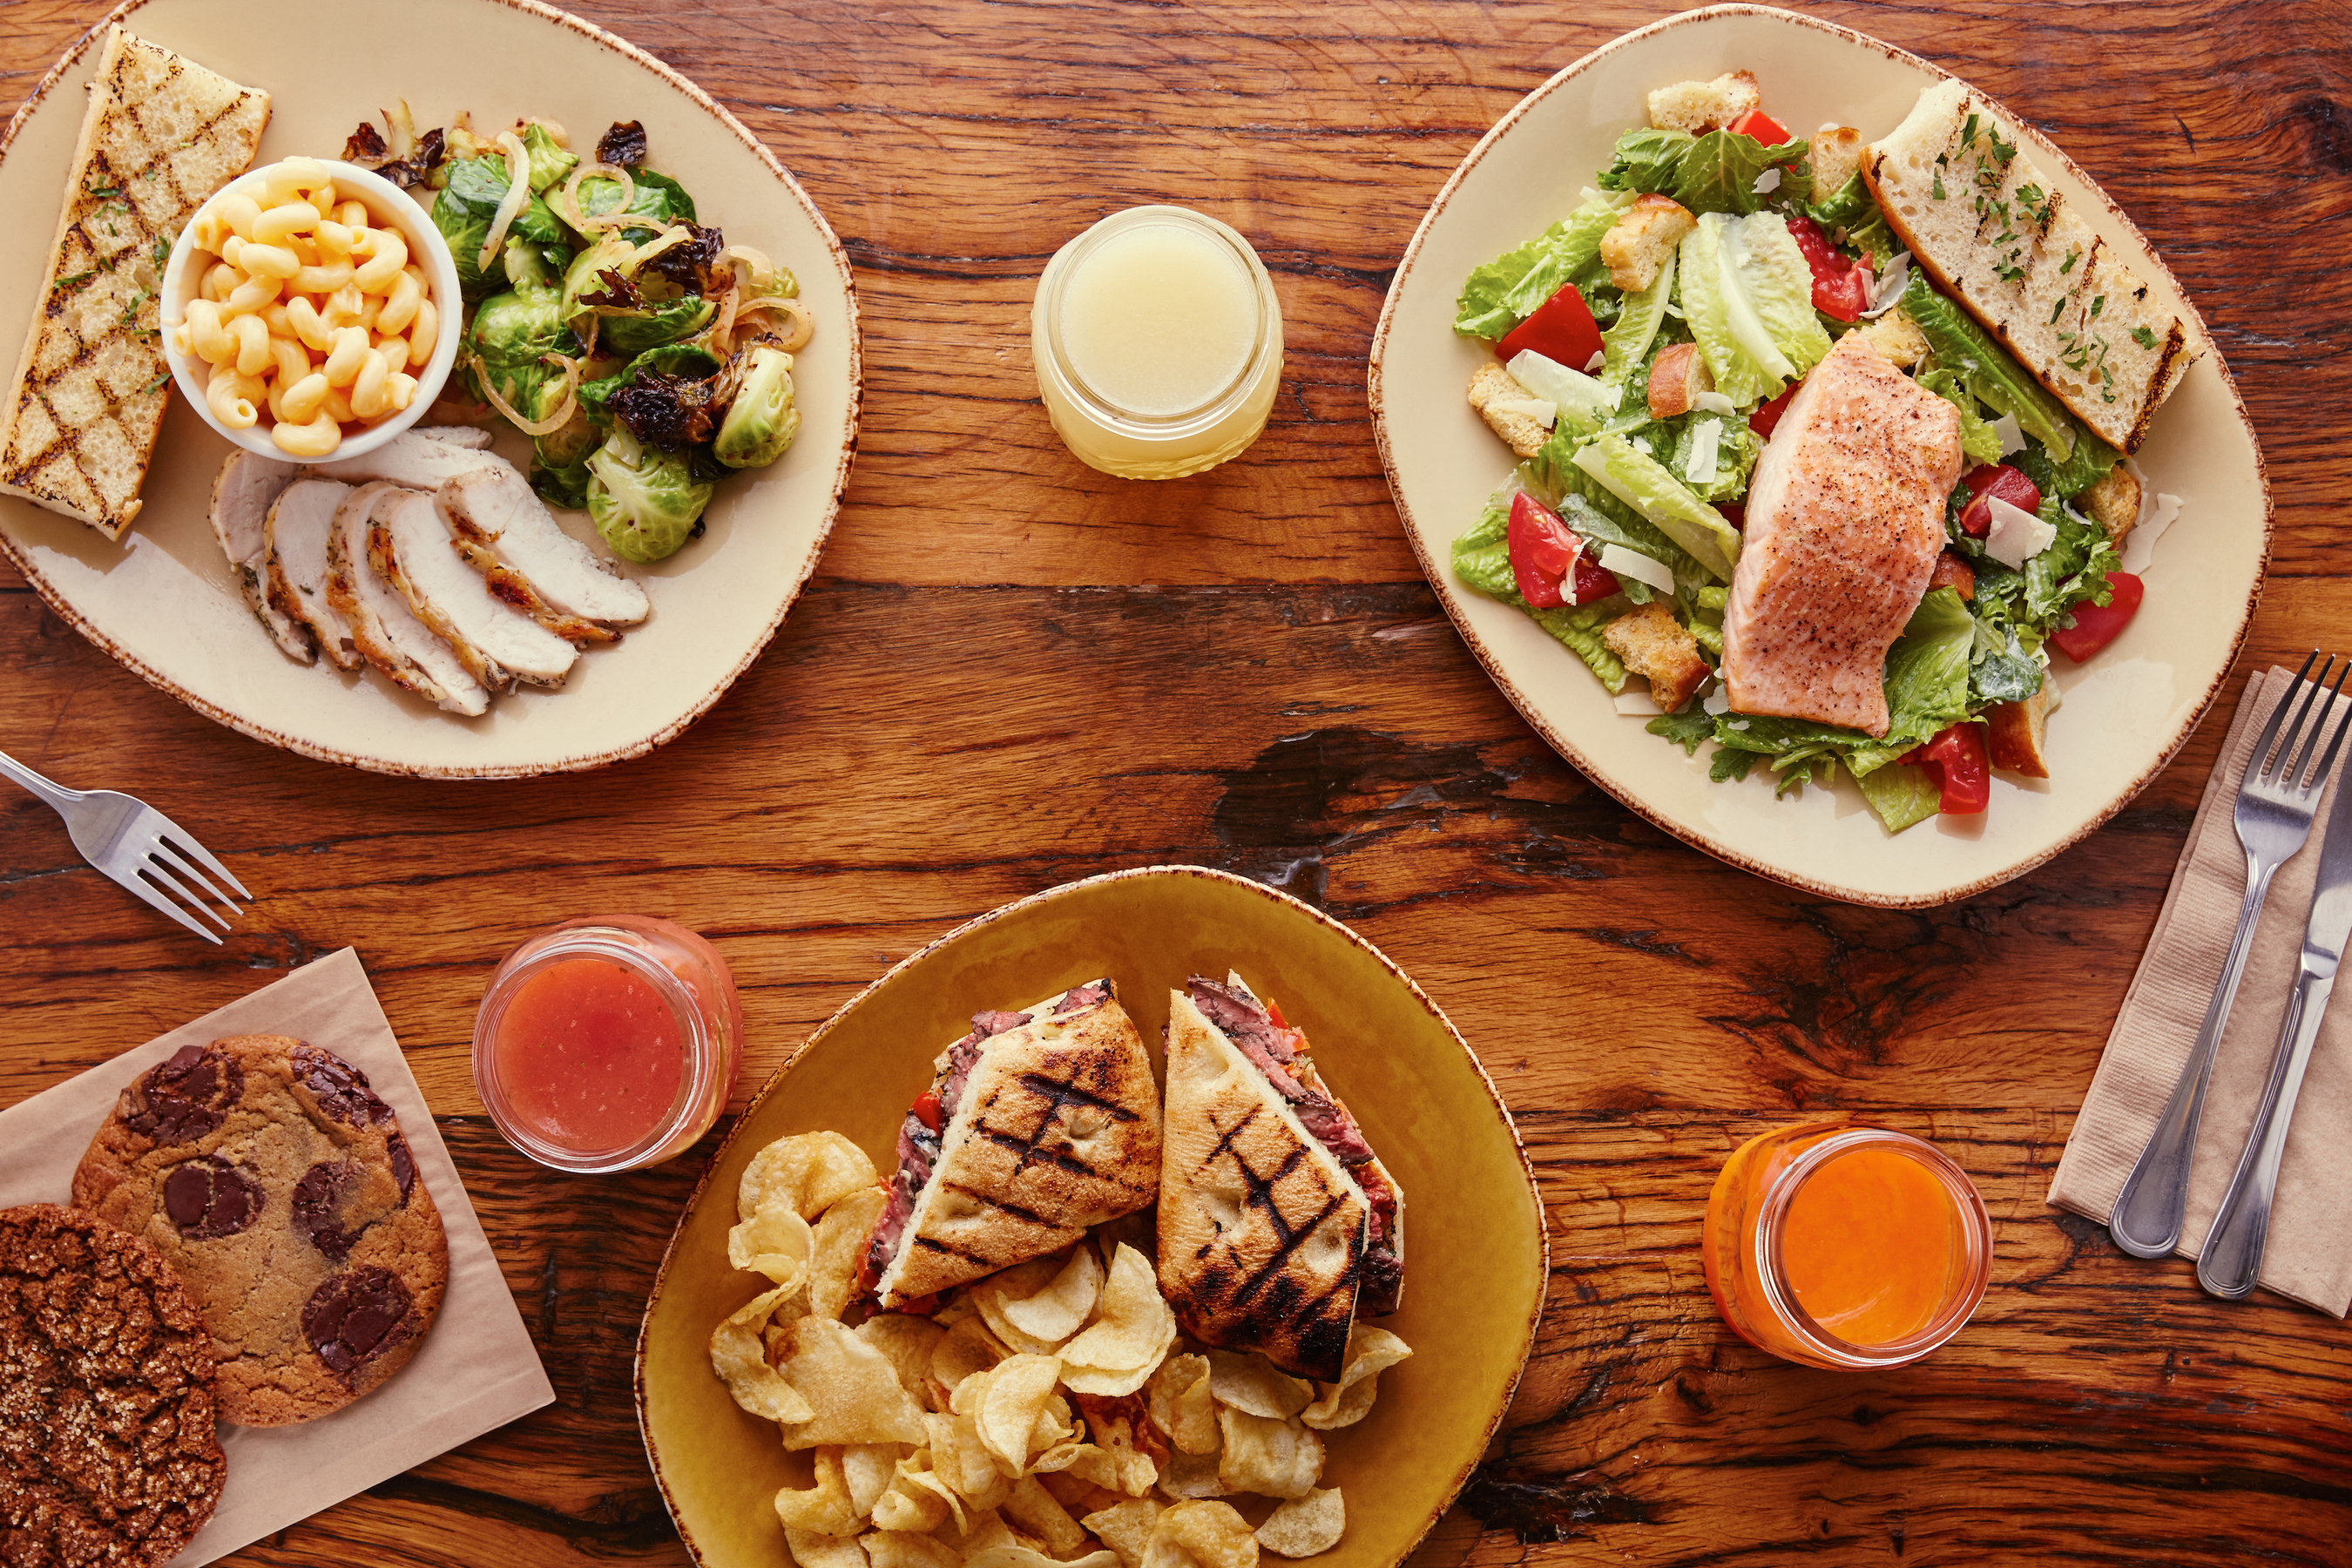 Real meals made from scratch with free range chicken, grass fed steak, wild caught albacore, salmon and more.